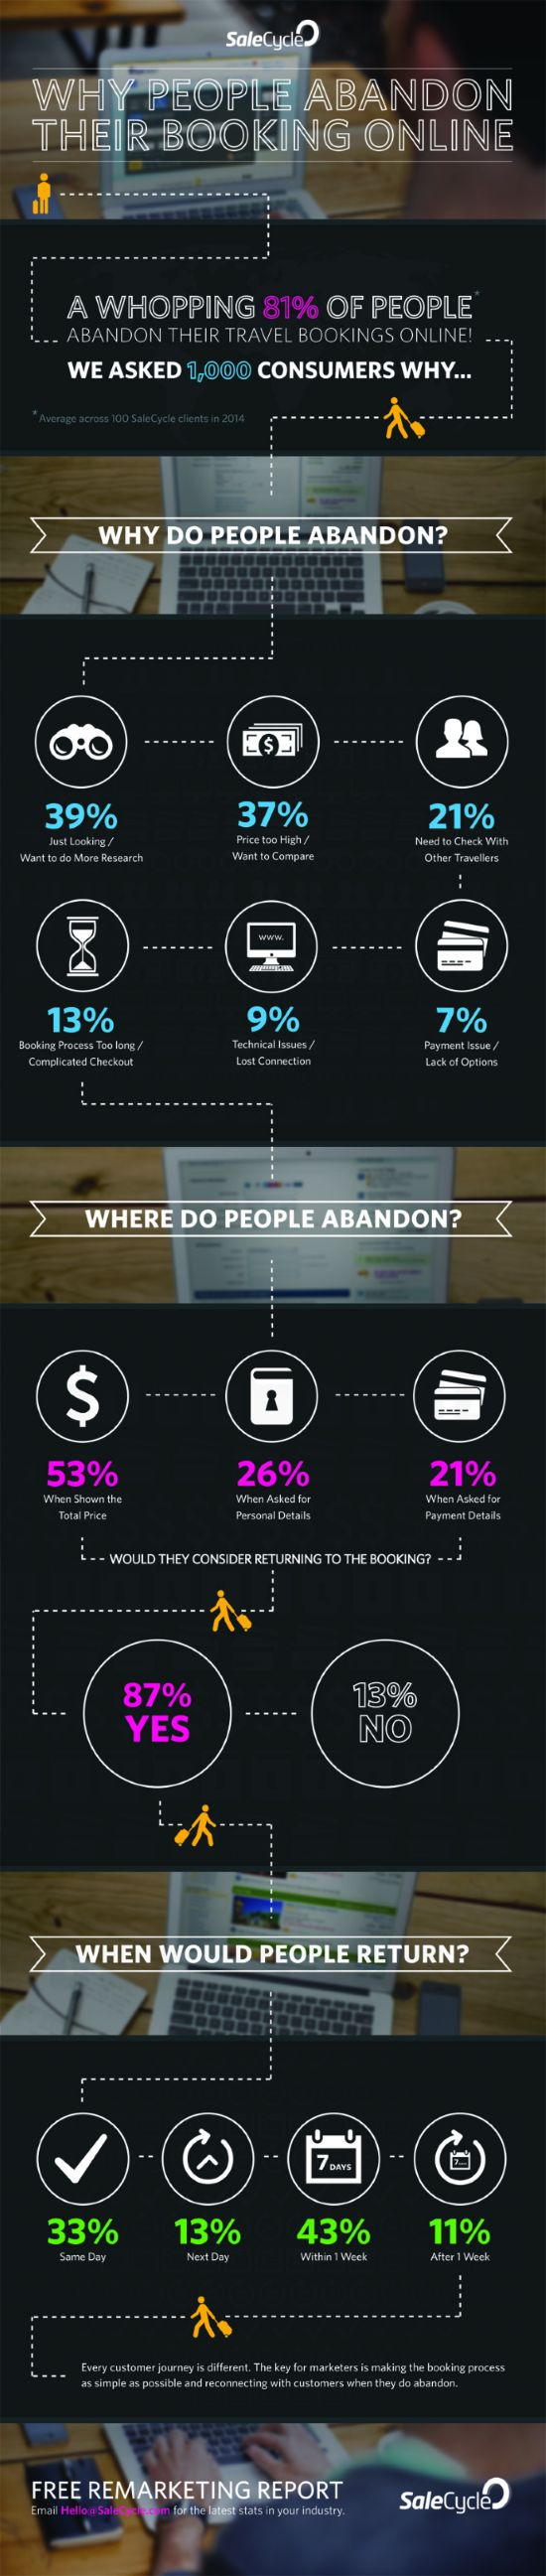 Interesting infographic on convertion ratio and abondonment ratio -